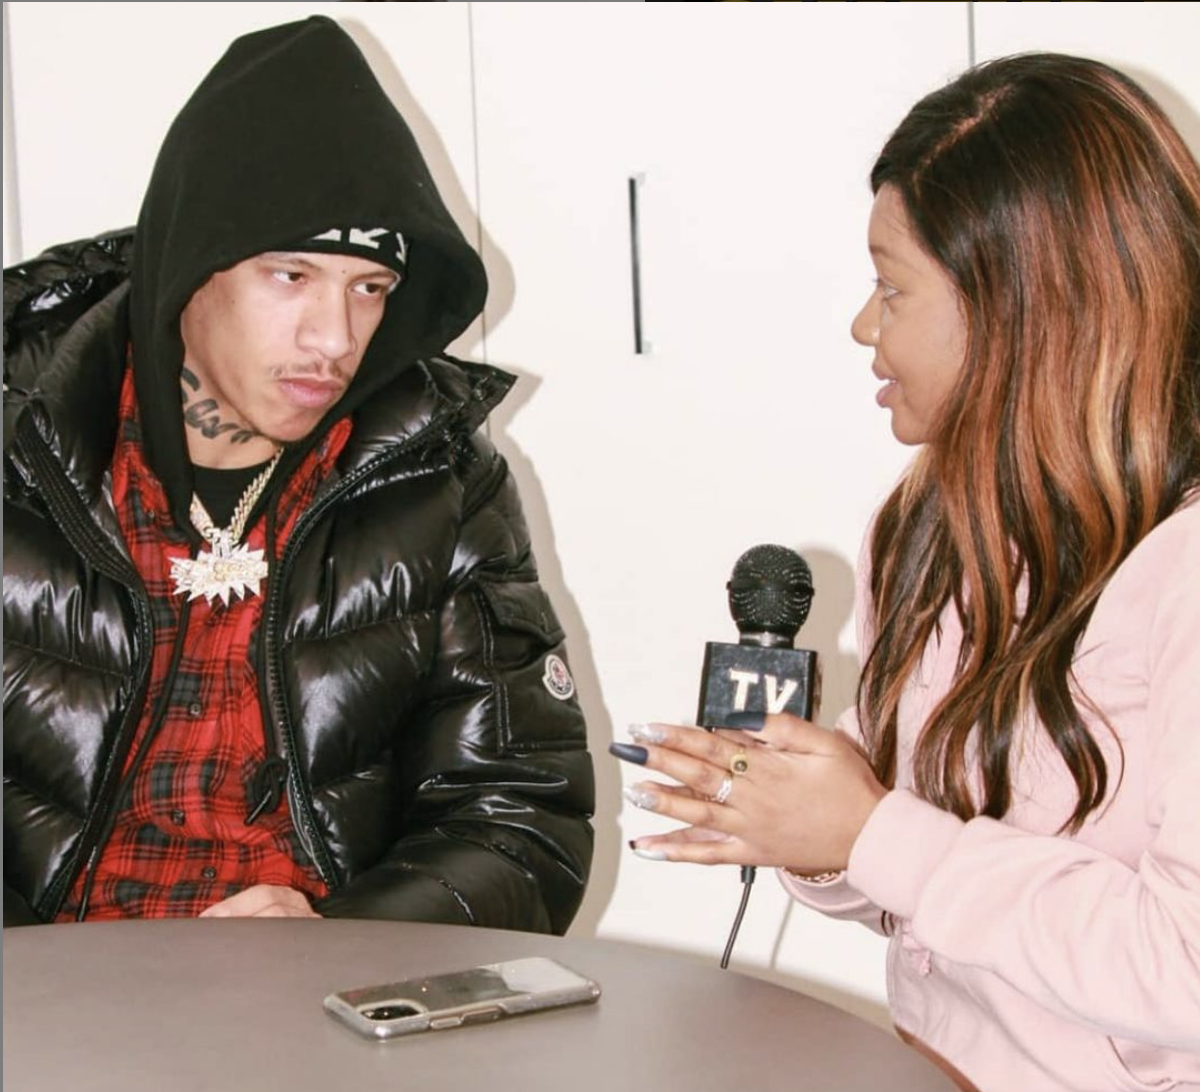 Mr. Swipey Interview Discussing Family, Music, His Legacy, Spinning & More.